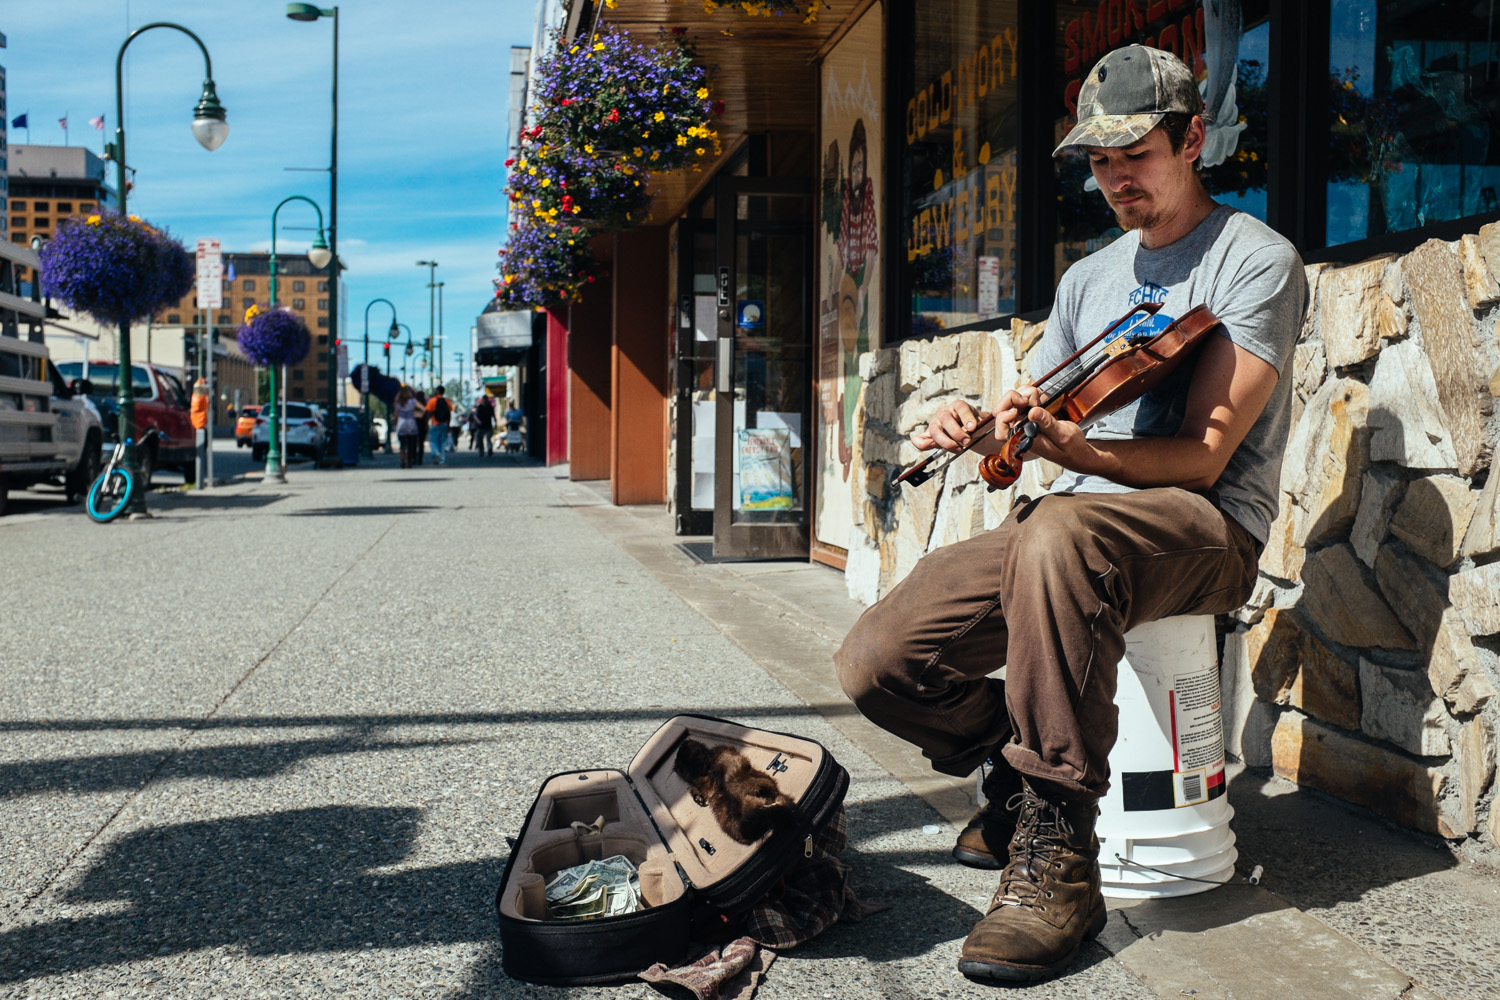 This guy was playing his heart out on the fiddle right outside a popular Anchorage gift shop on 4th Avenue.